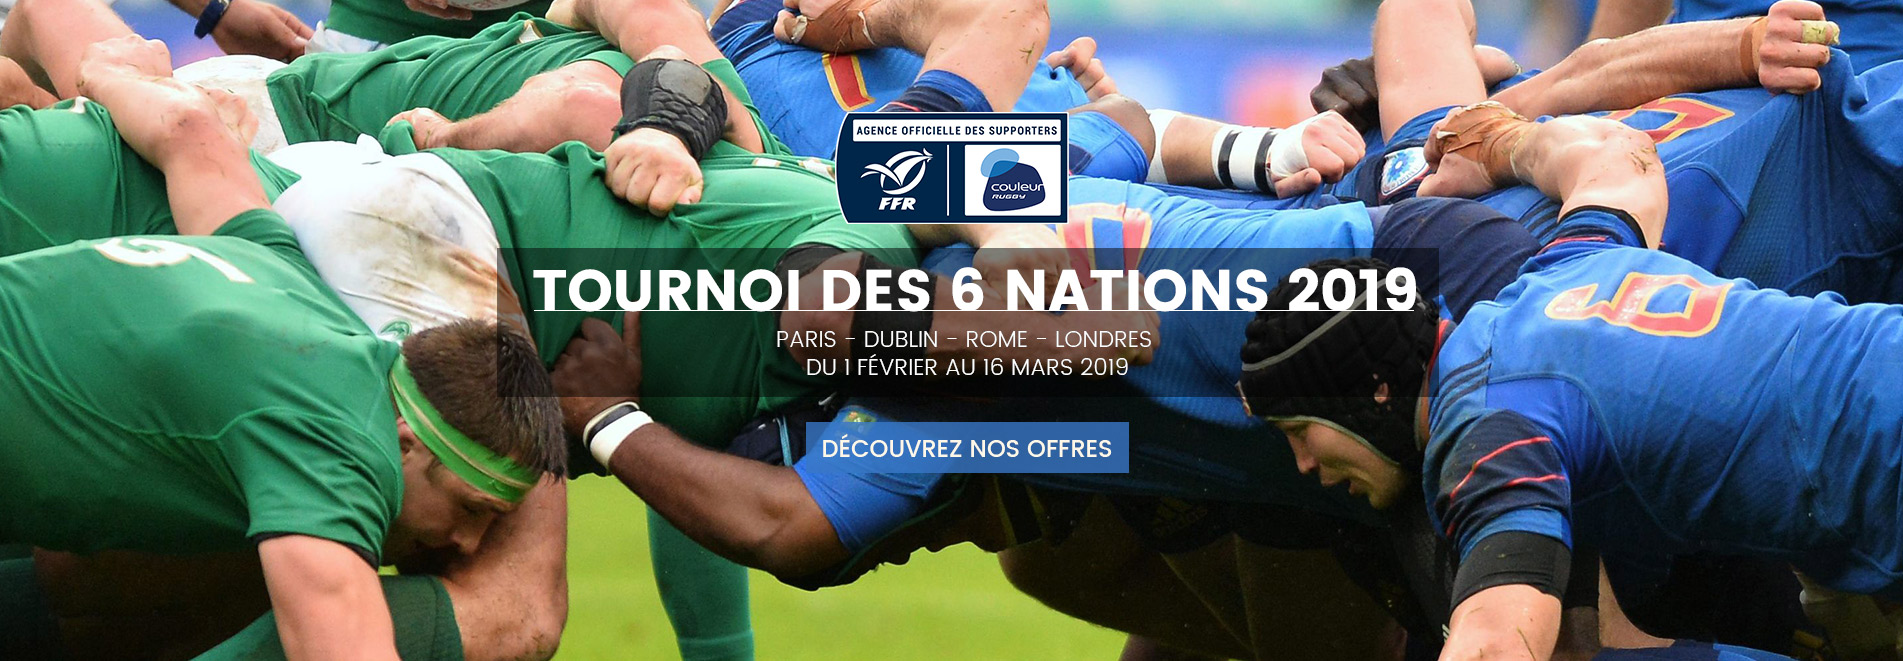 Tournoi des 6 Nations - Voyages Sports